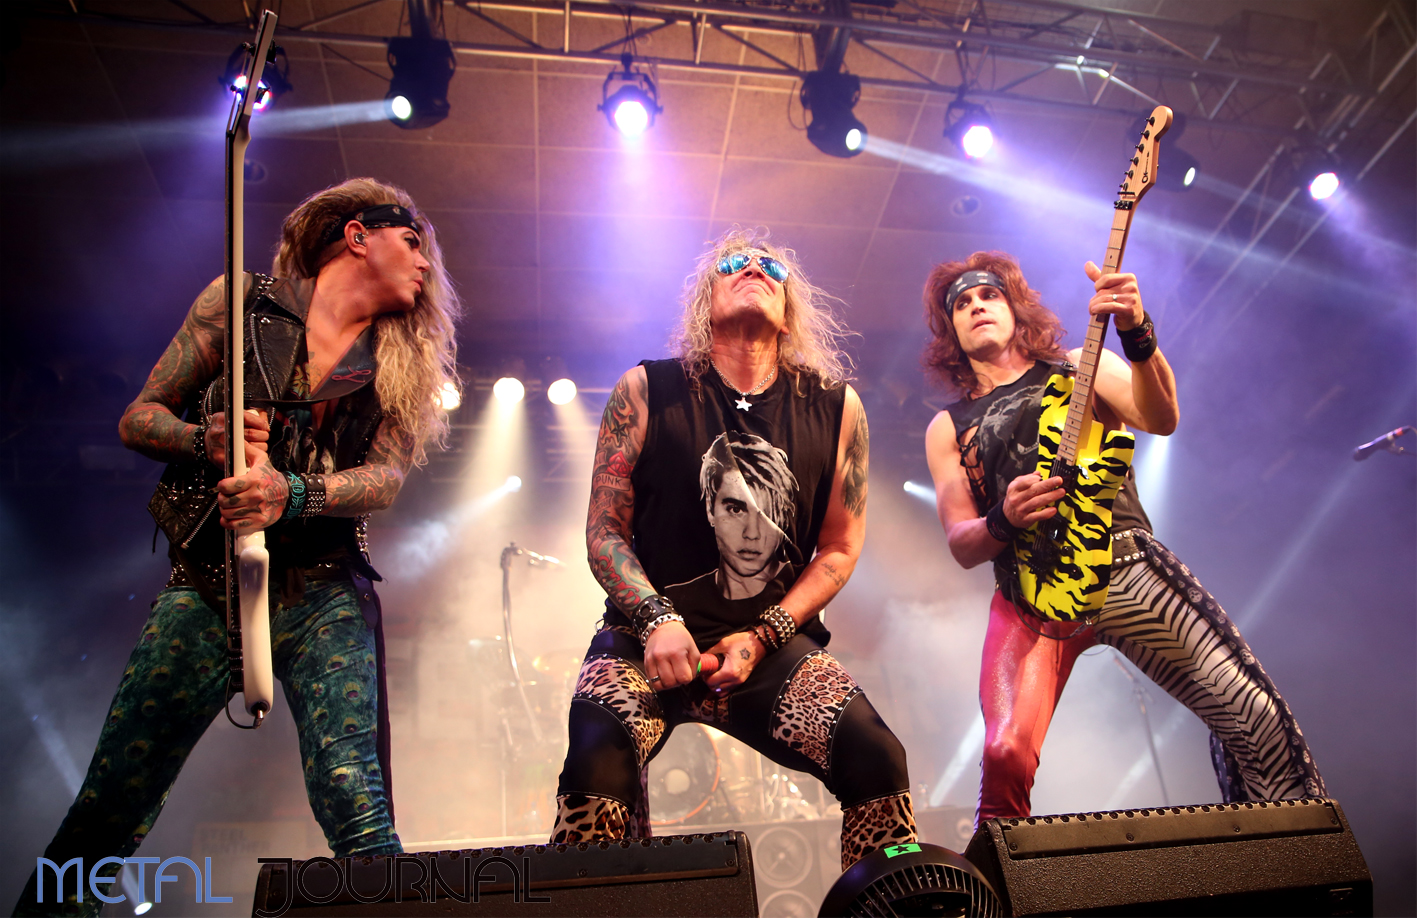 steel panther bilbao18 metal journal pic 3